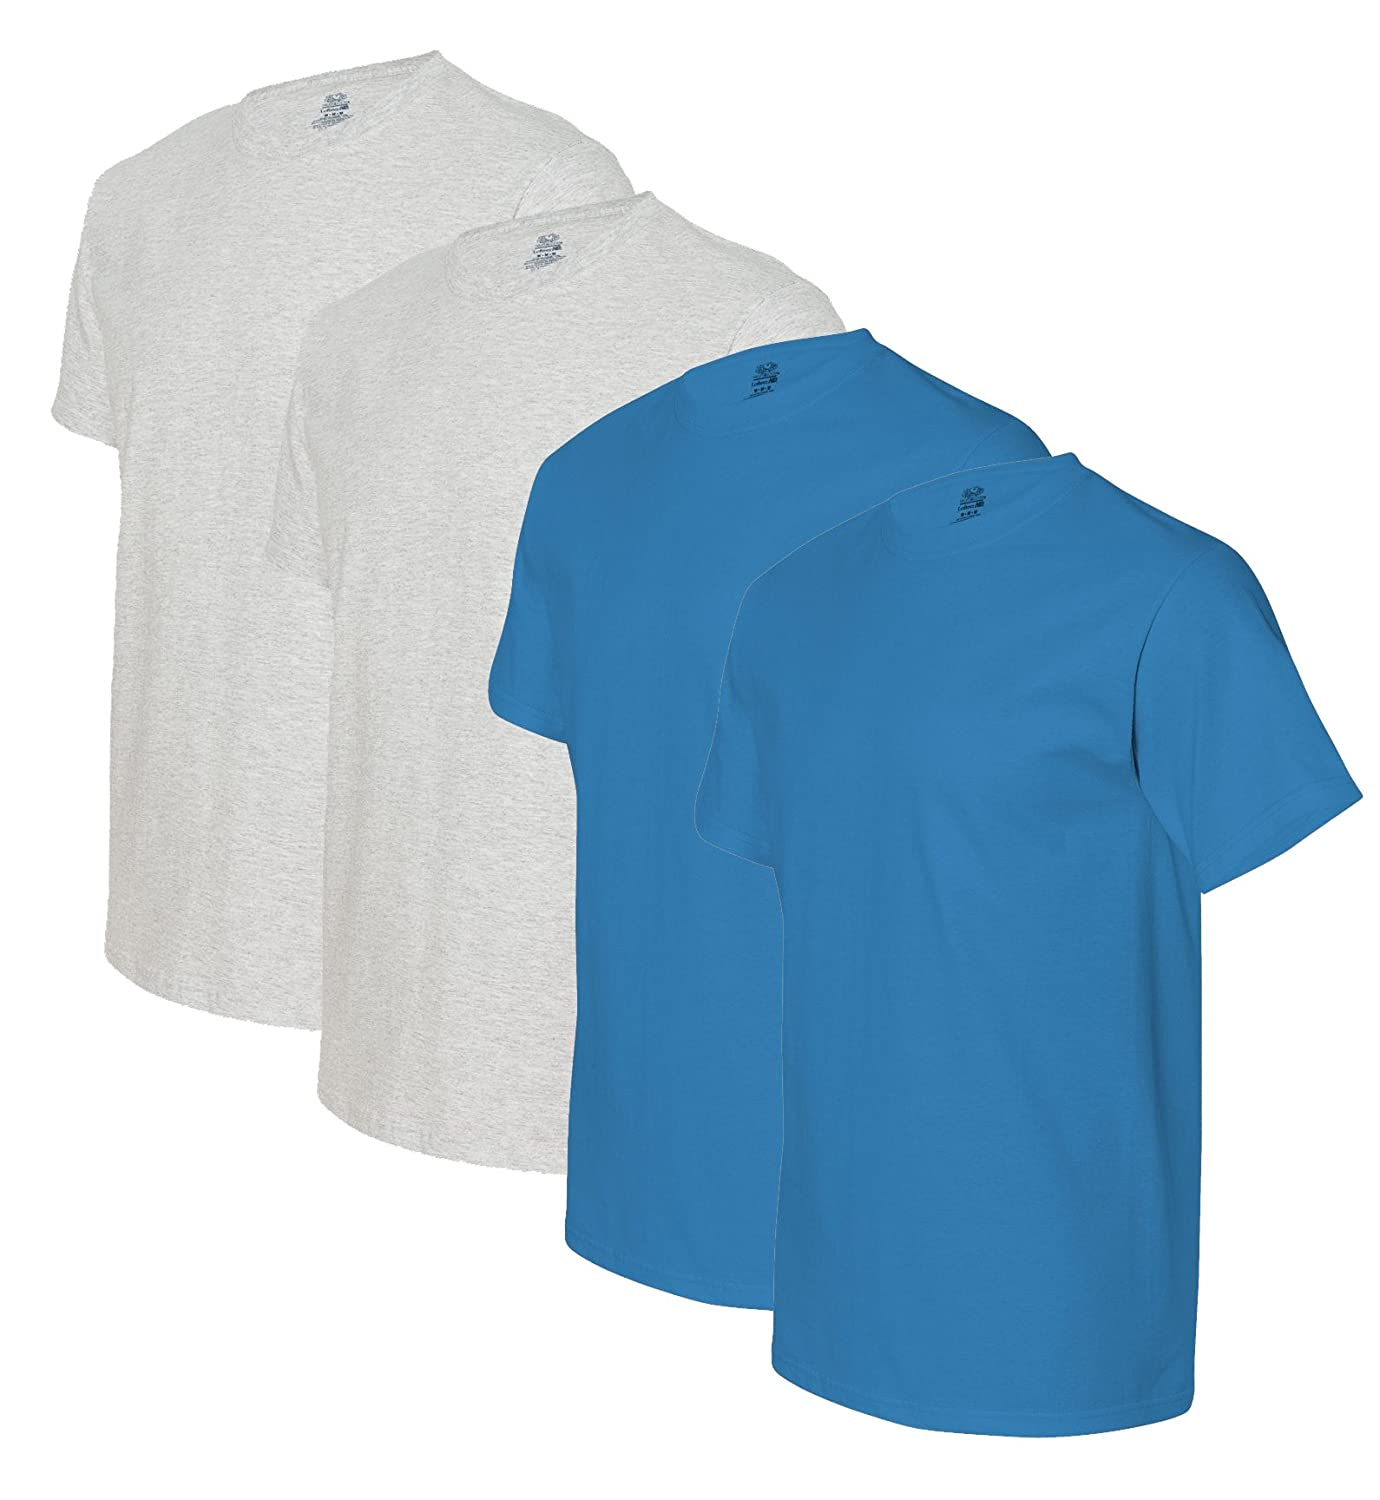 Fruit of the Loom Men's Crew Neck T-Shirt Multipack FTL-4P2801C